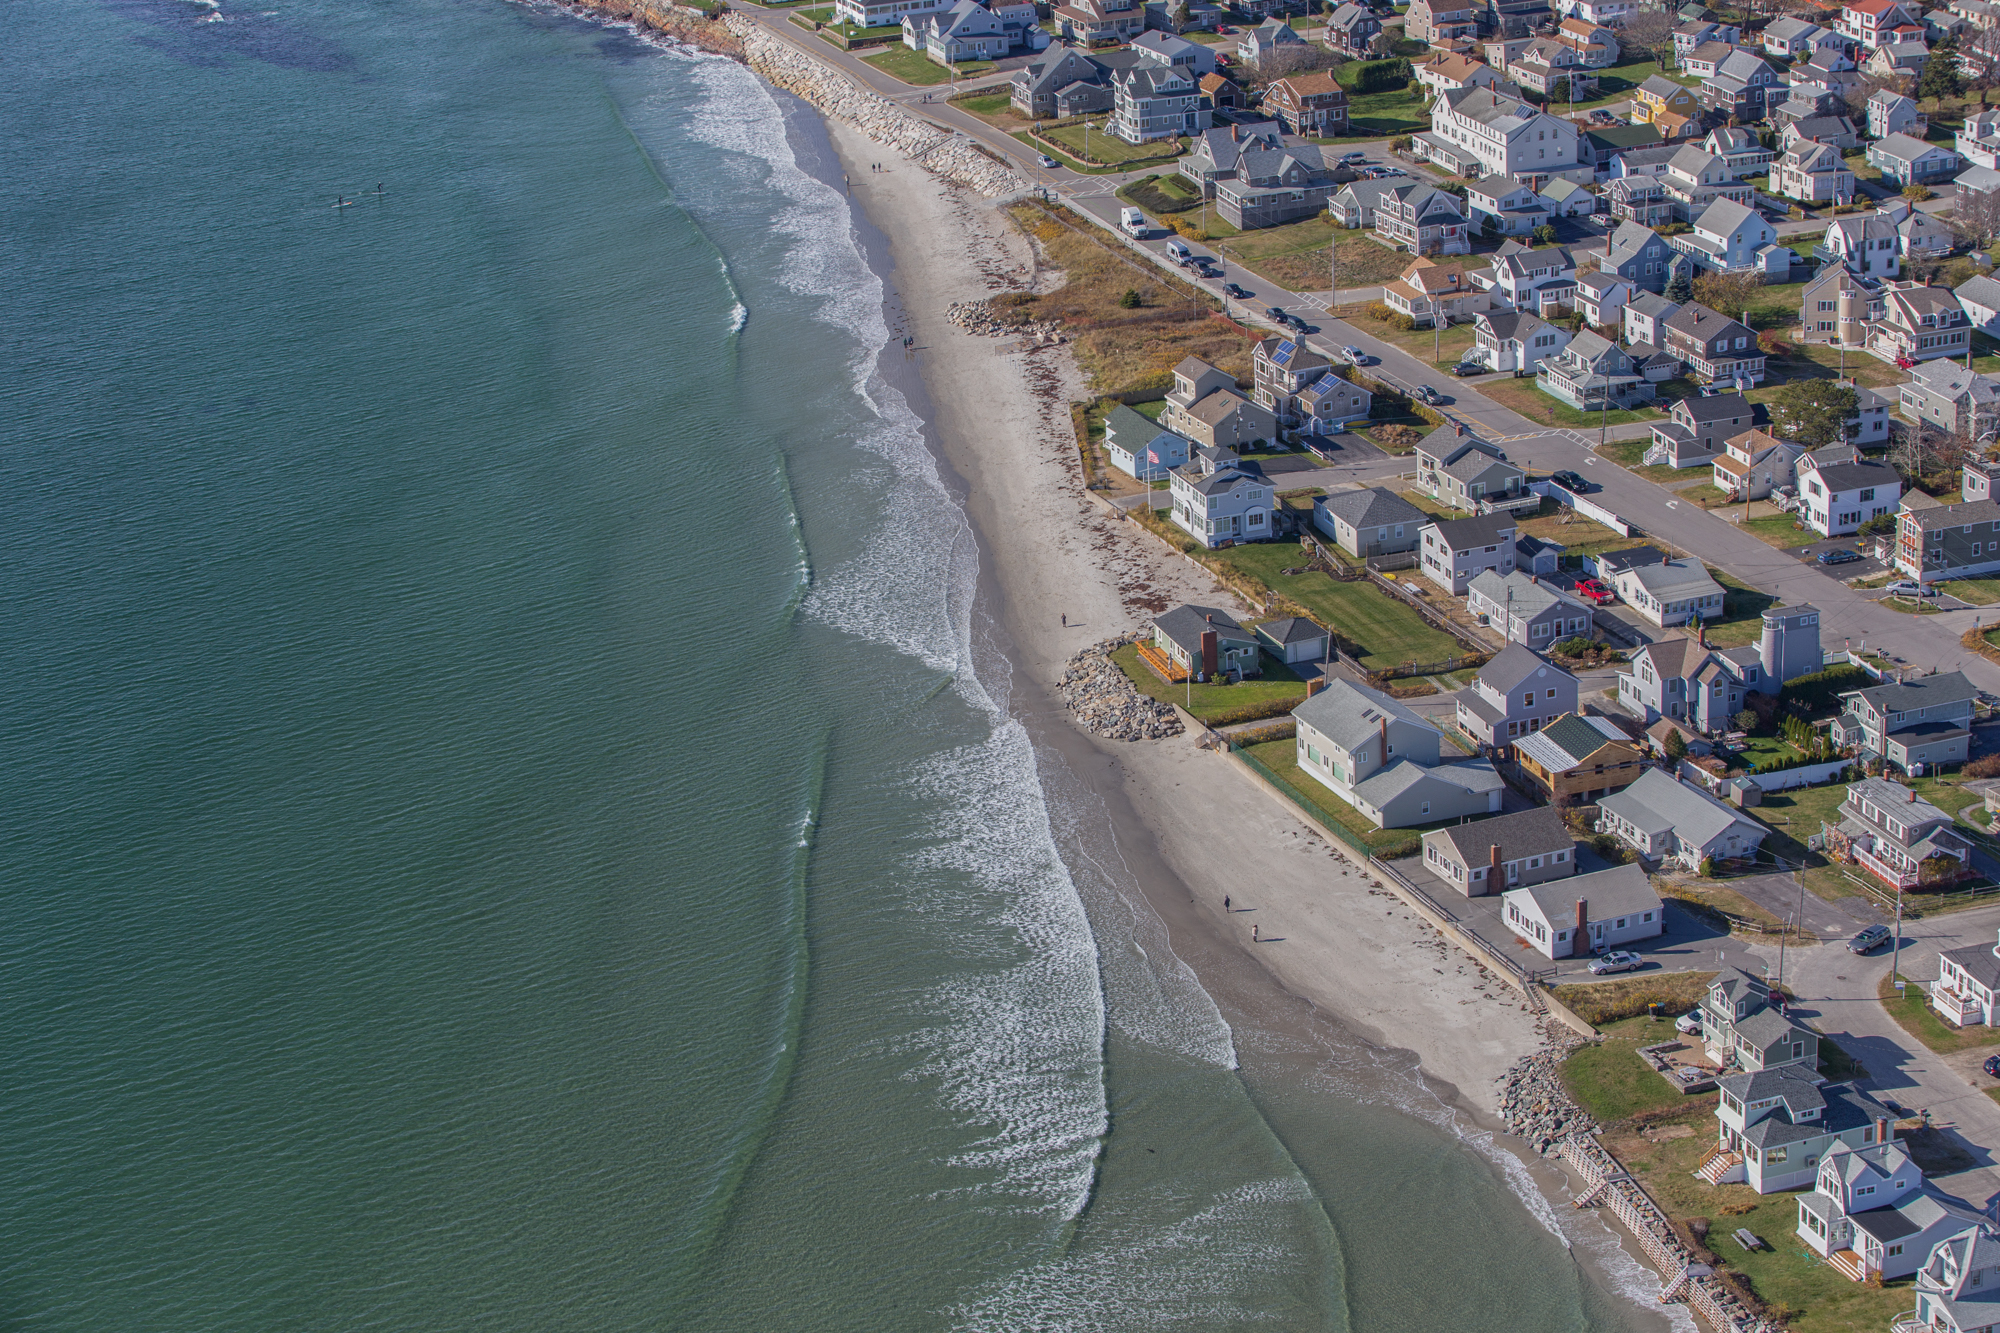 higgins_beach_waterfront_aerial_waves.jpg